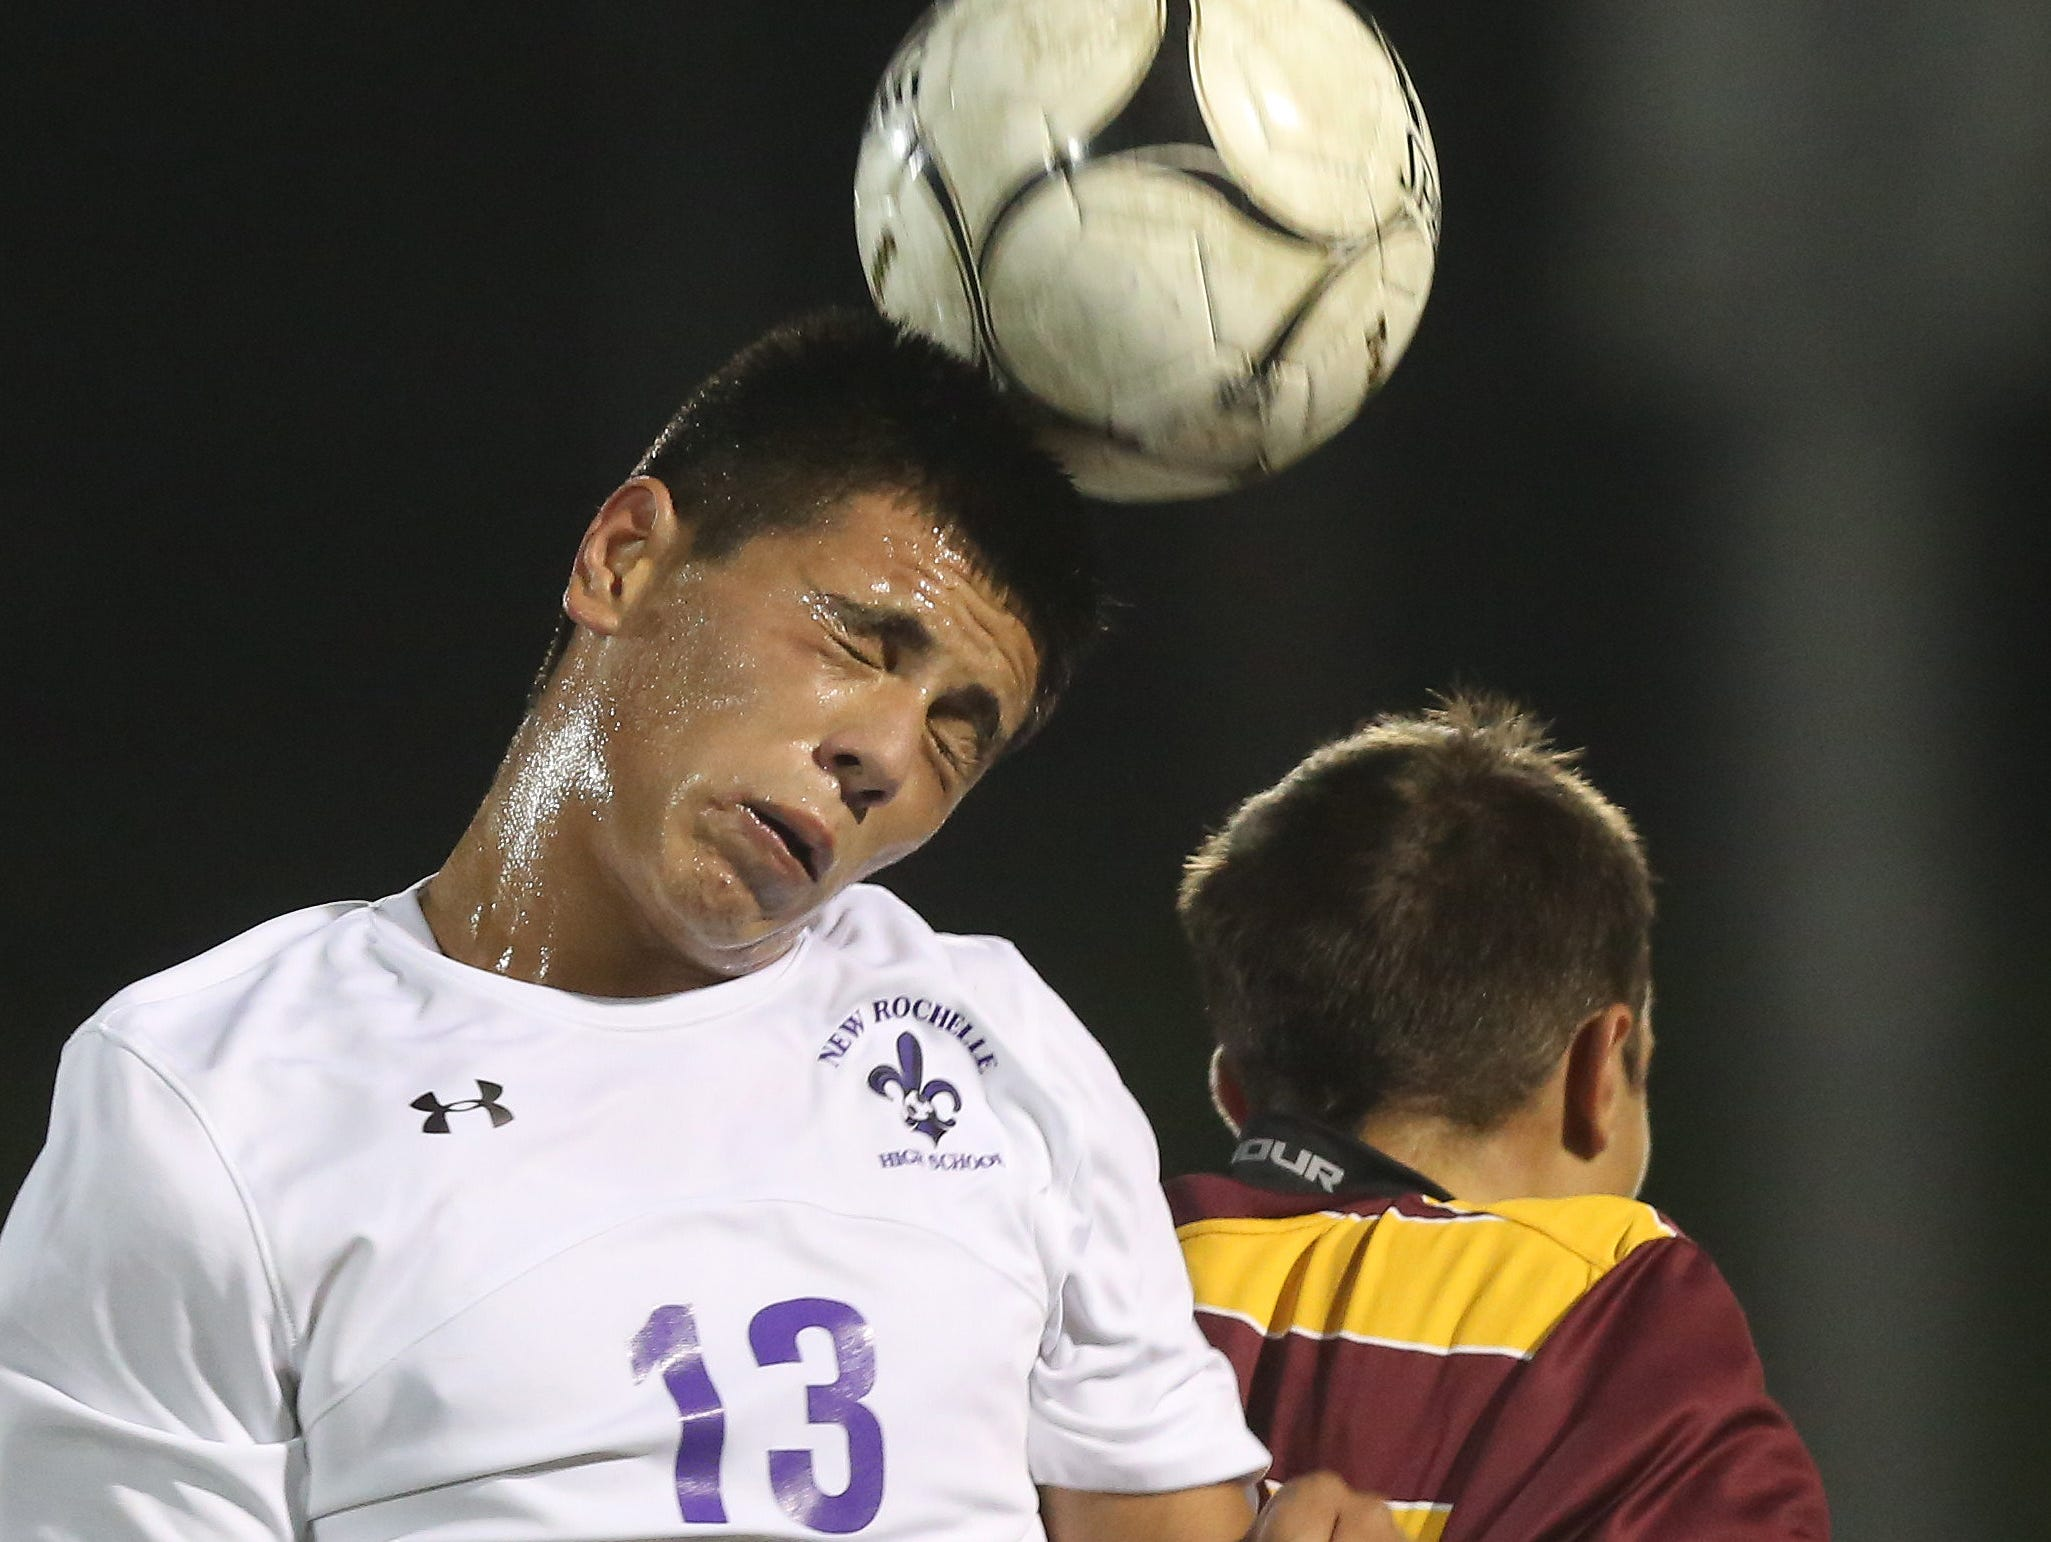 From left, New Rochelle's Oscar Espinoza (13) heads the ball away from an Ithaca defender during the boys soccer regional semifinal at Lakeland High School in Shrub Oak Nov. 2, 2016.